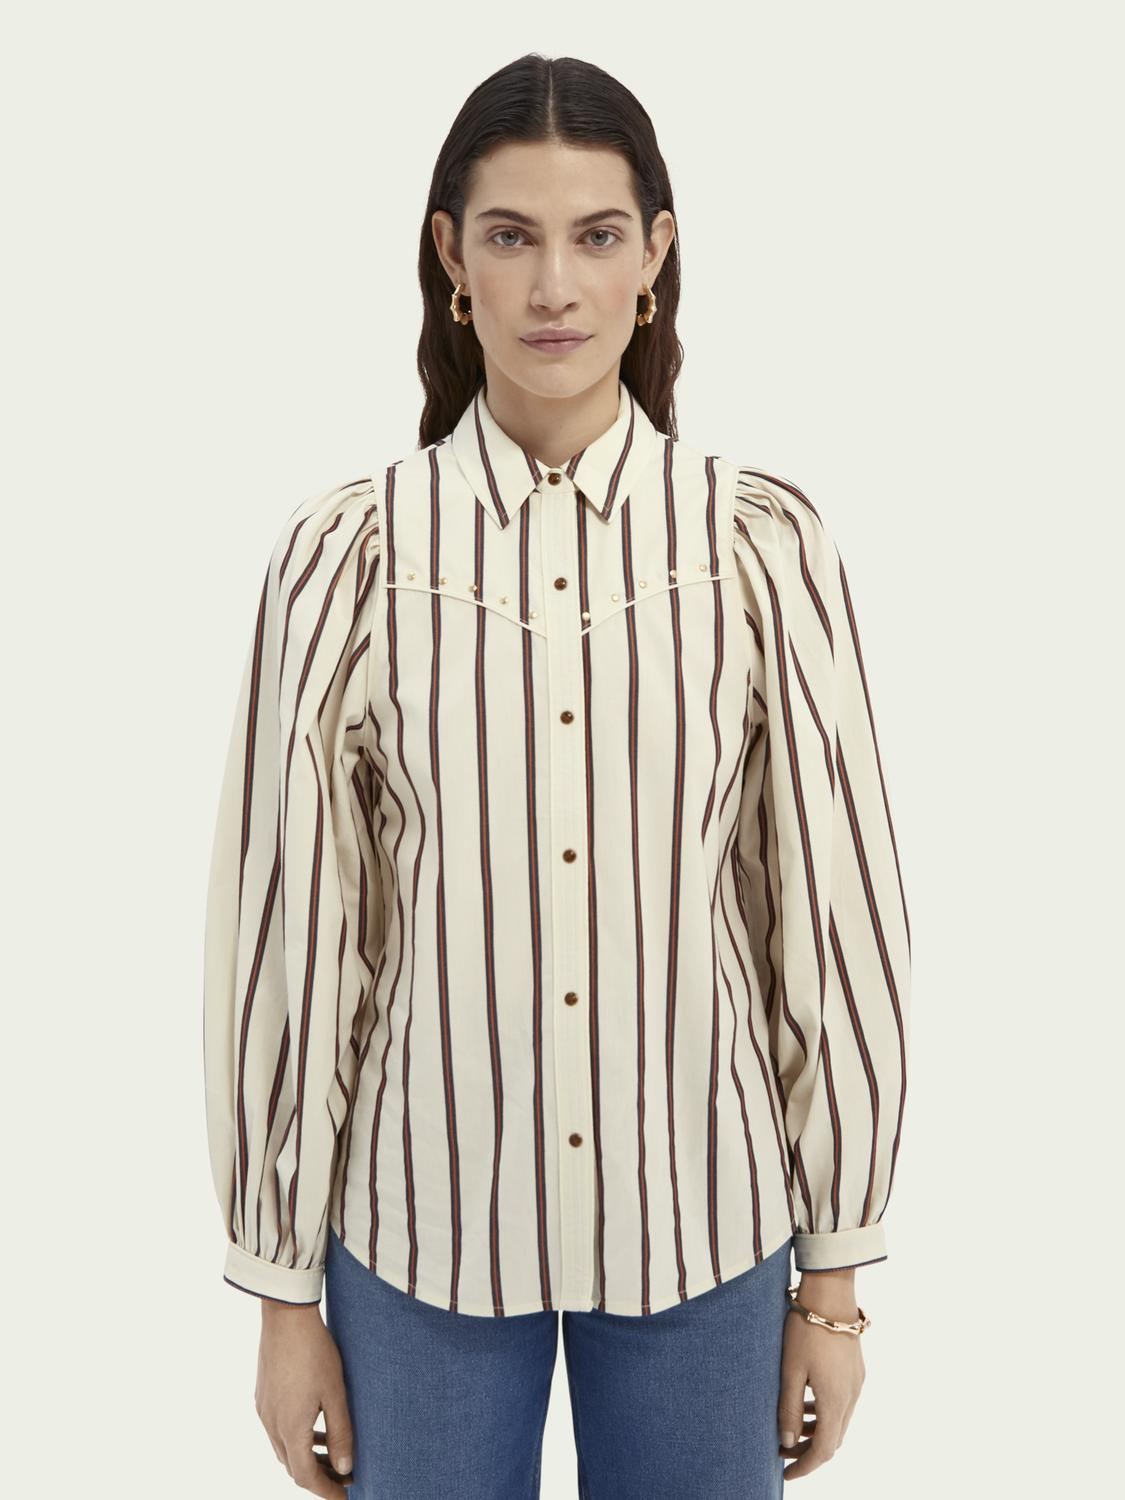 Western-style shirt with balloon sleeves